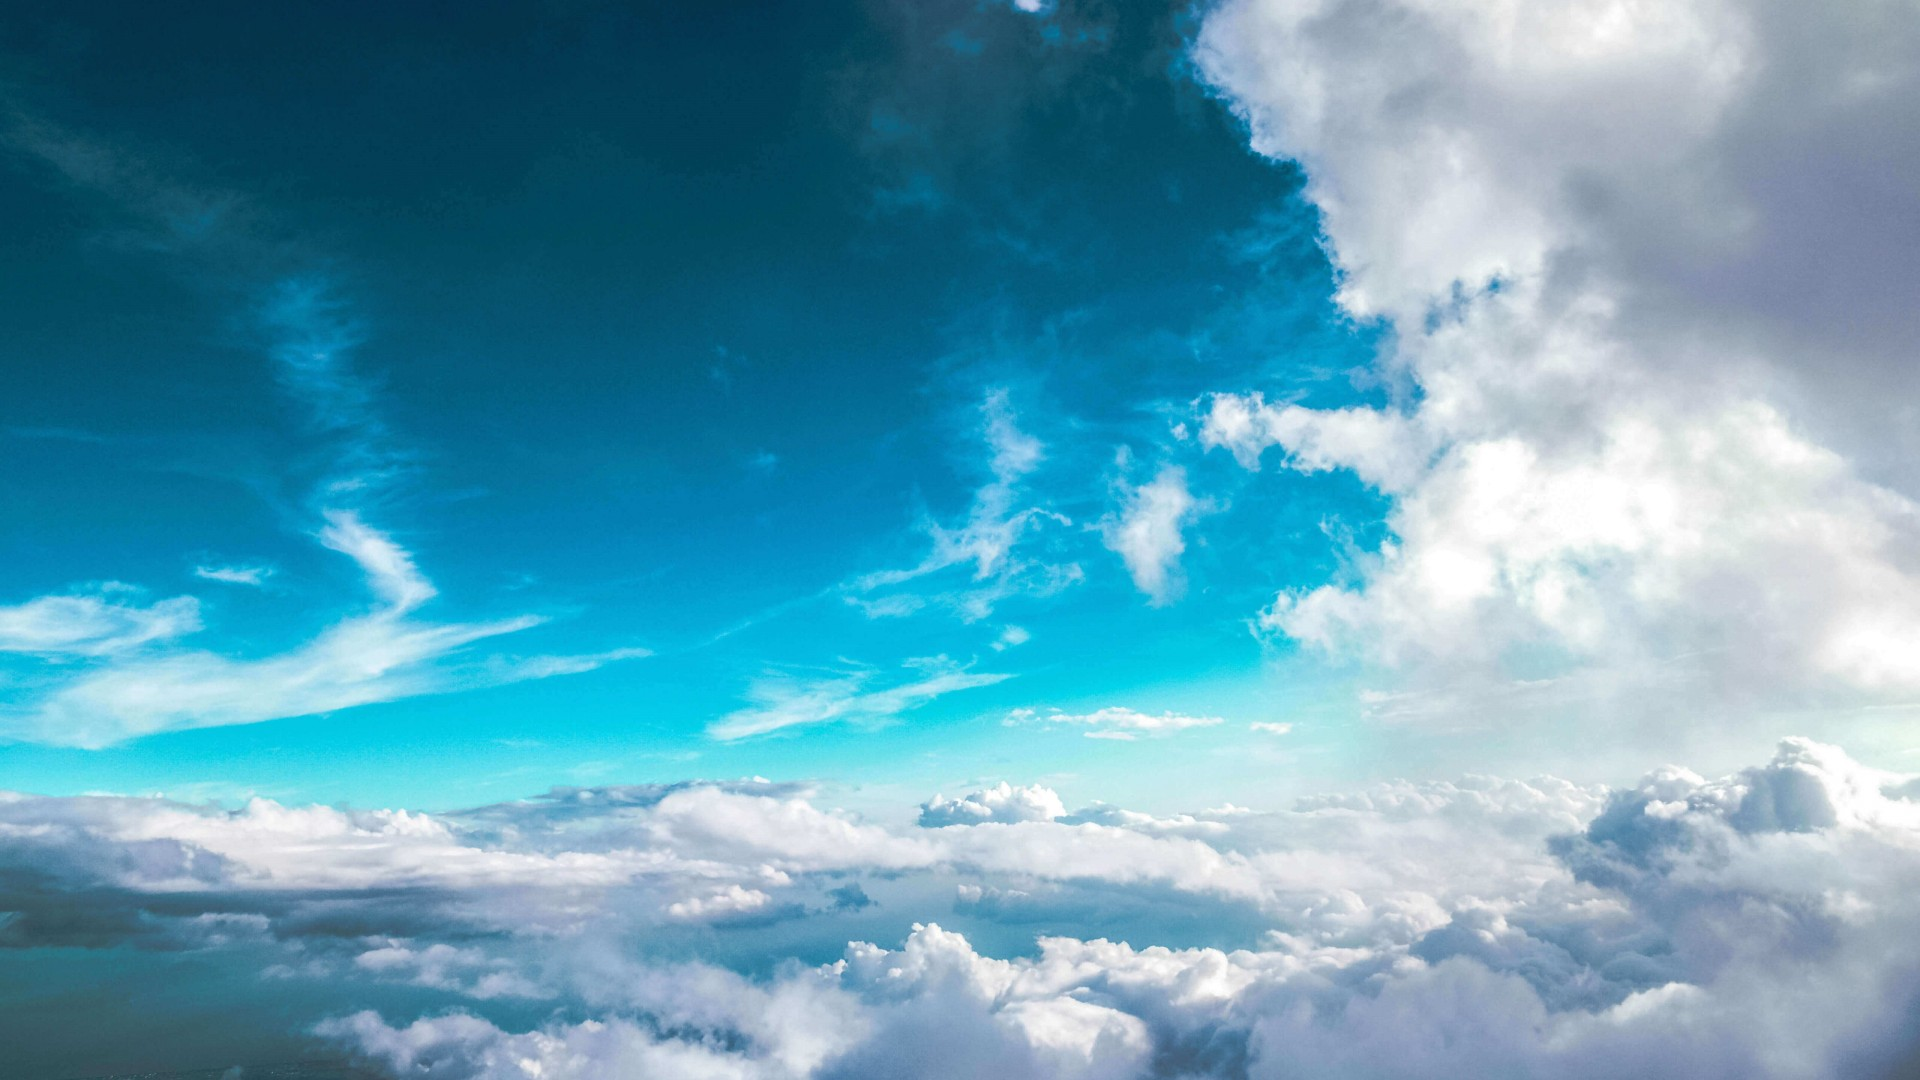 Cloudy Blue Sky Wallpaper for Desktop 1920x1080